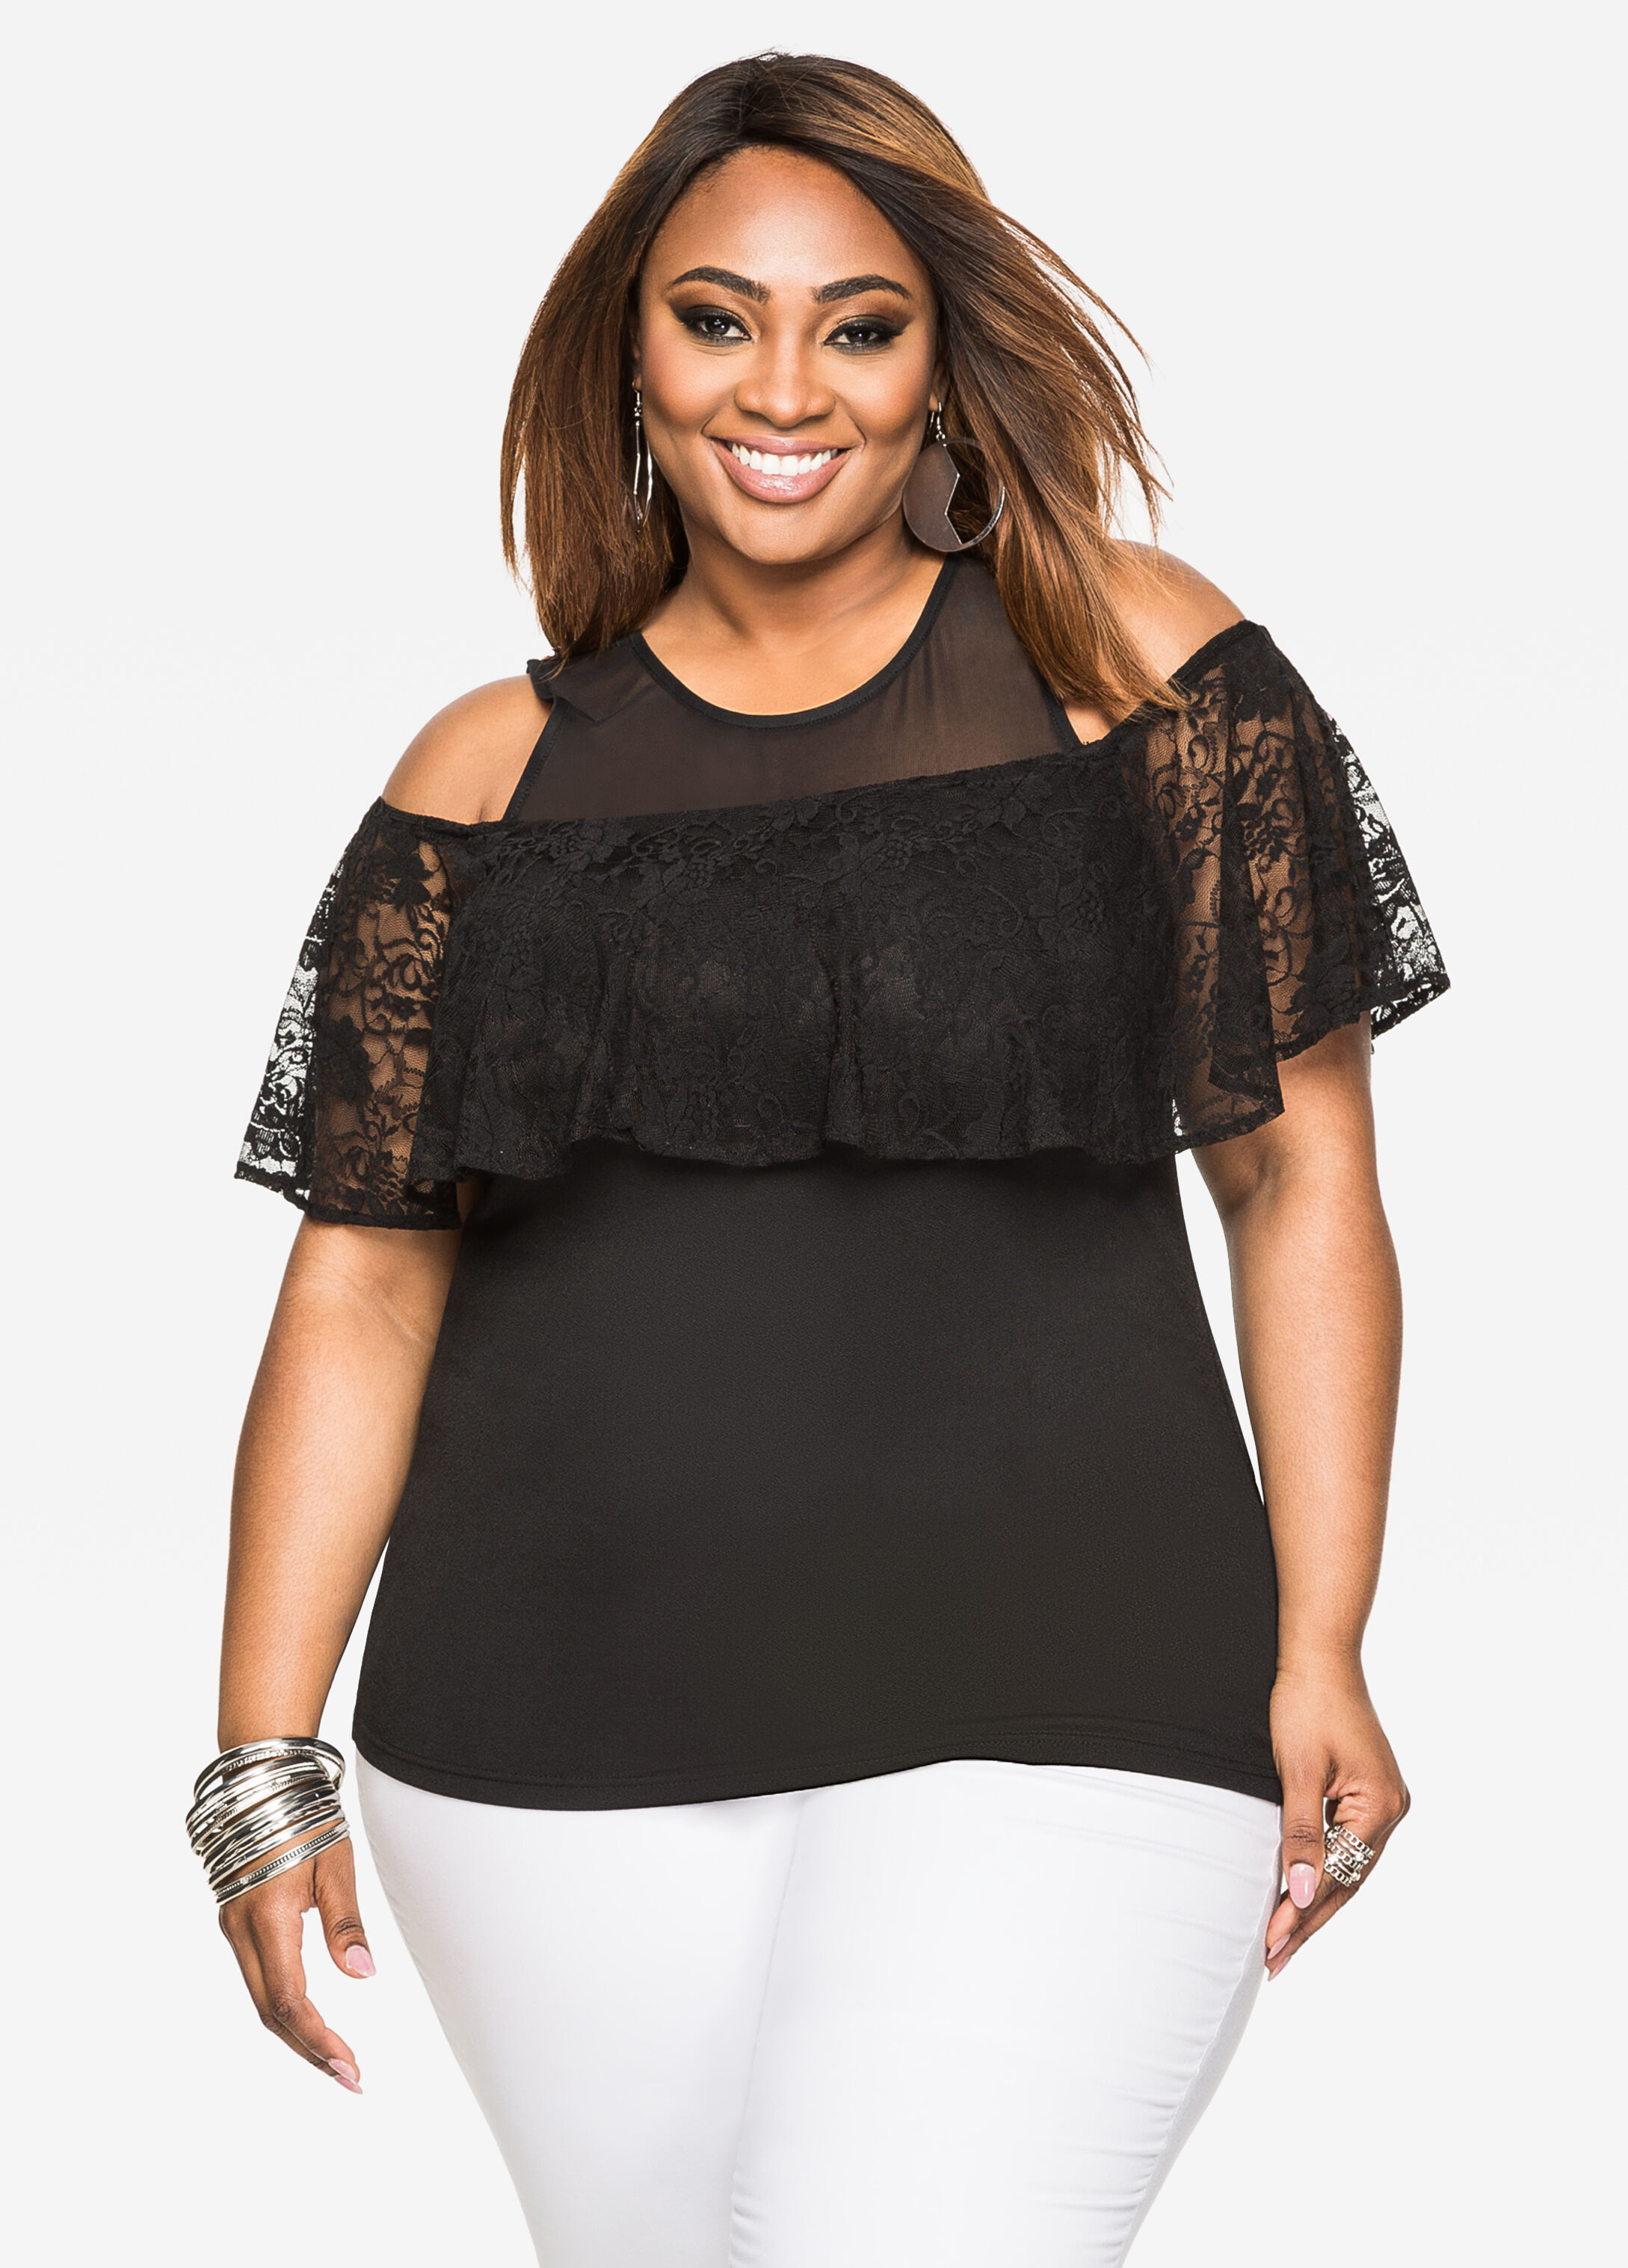 Buy Plus Size Black Cold Shoulder Tops - Ashley Stewart